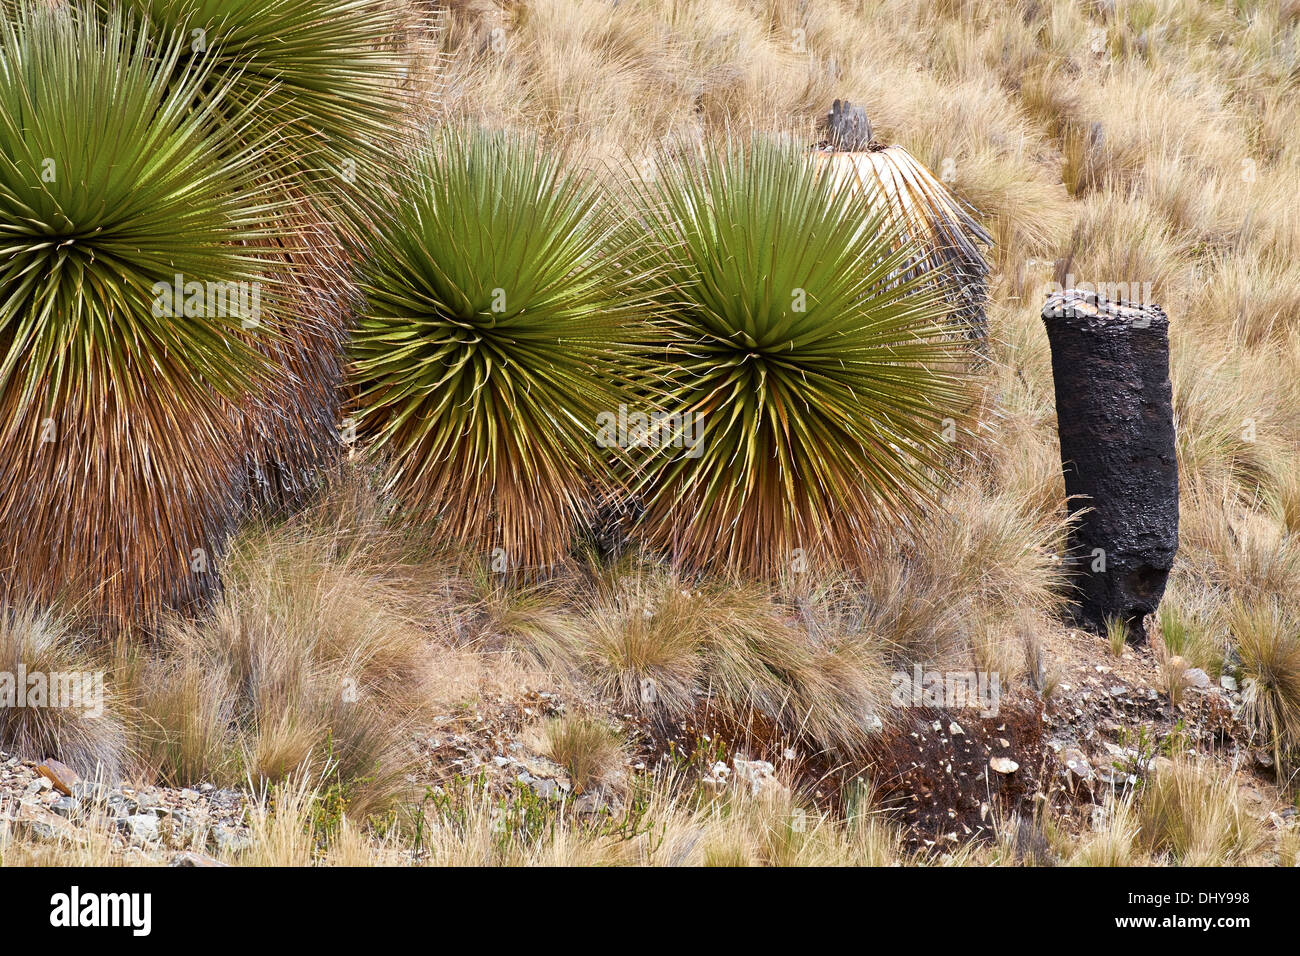 Burnt Puya Raimondii Plants high up in the Peruvian Andes, South America. Stock Photo